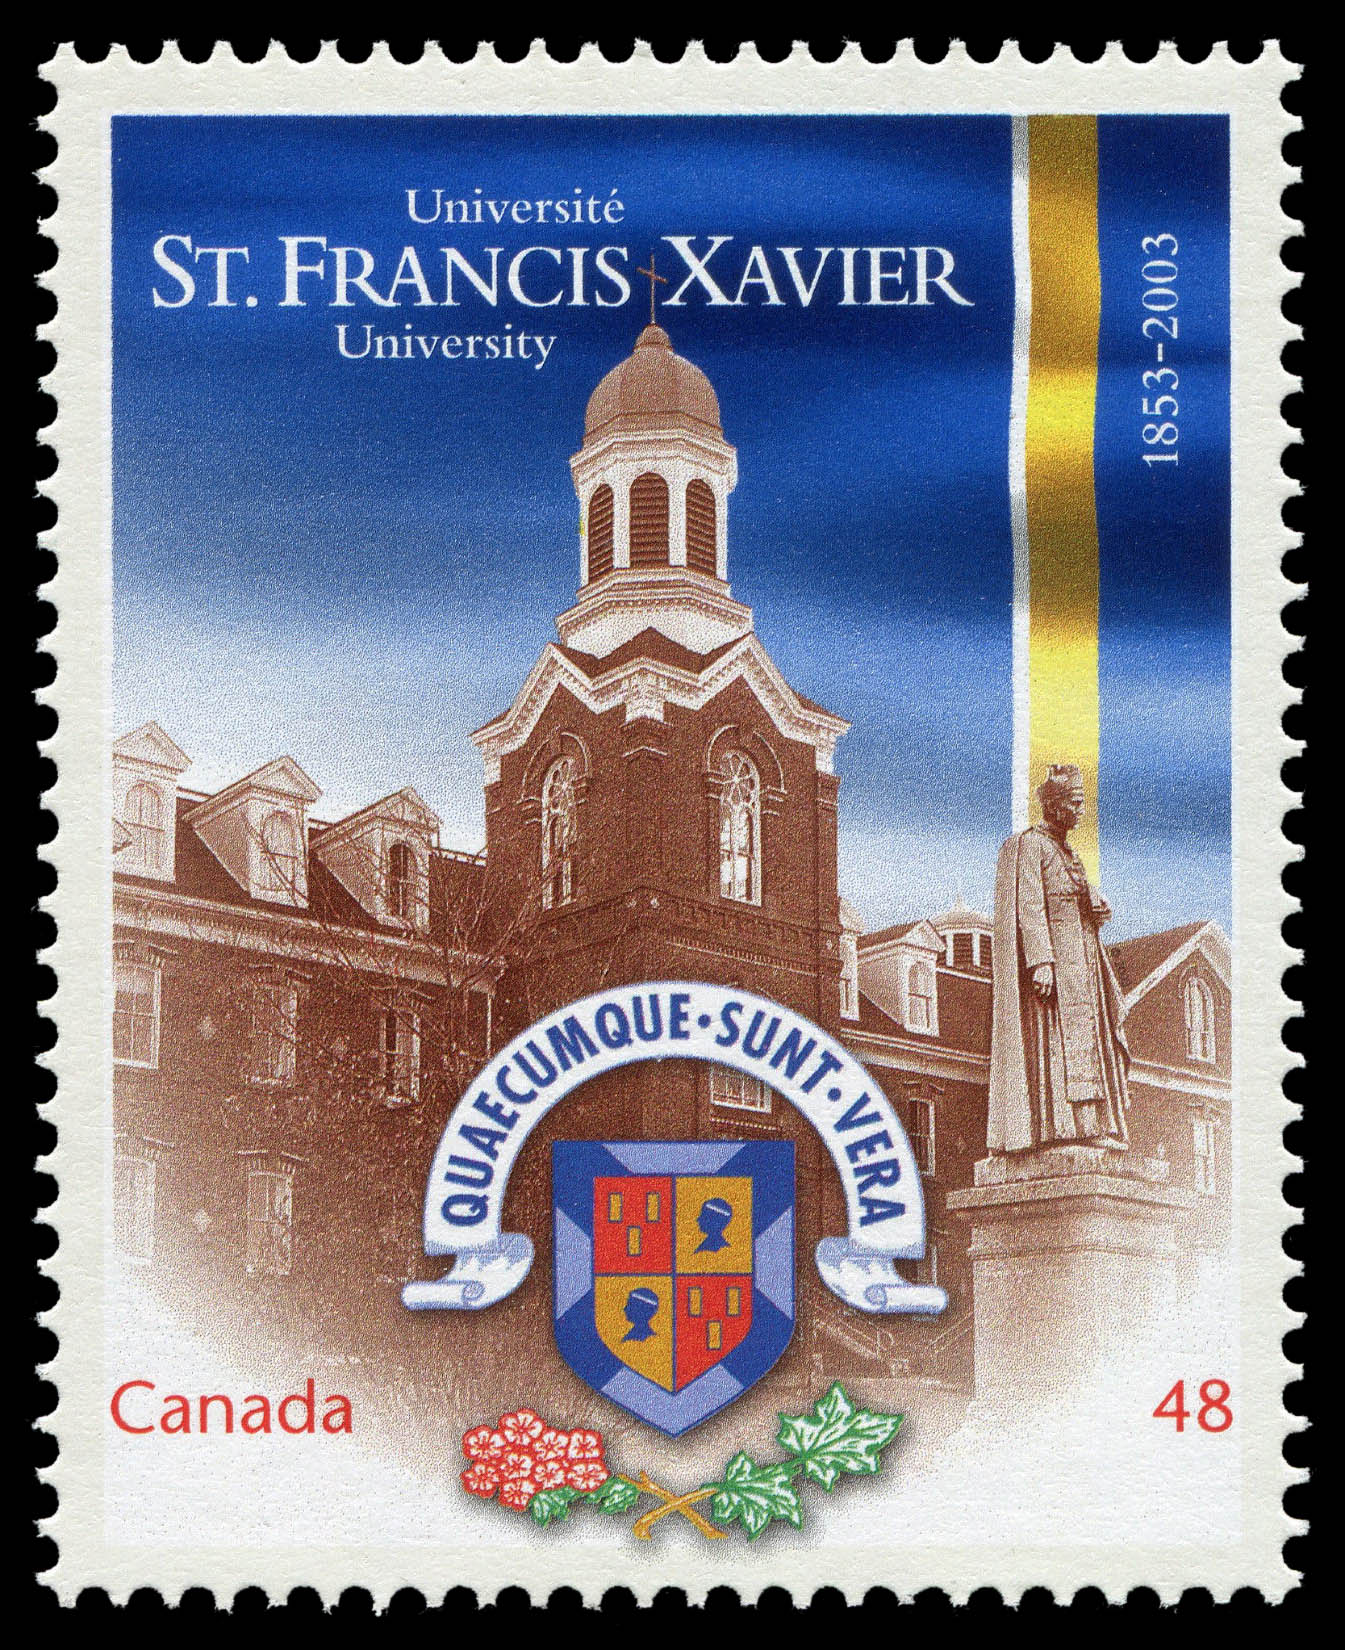 St. Francis Xavier University, 1853-2003 Canada Postage Stamp | Canadian Universities